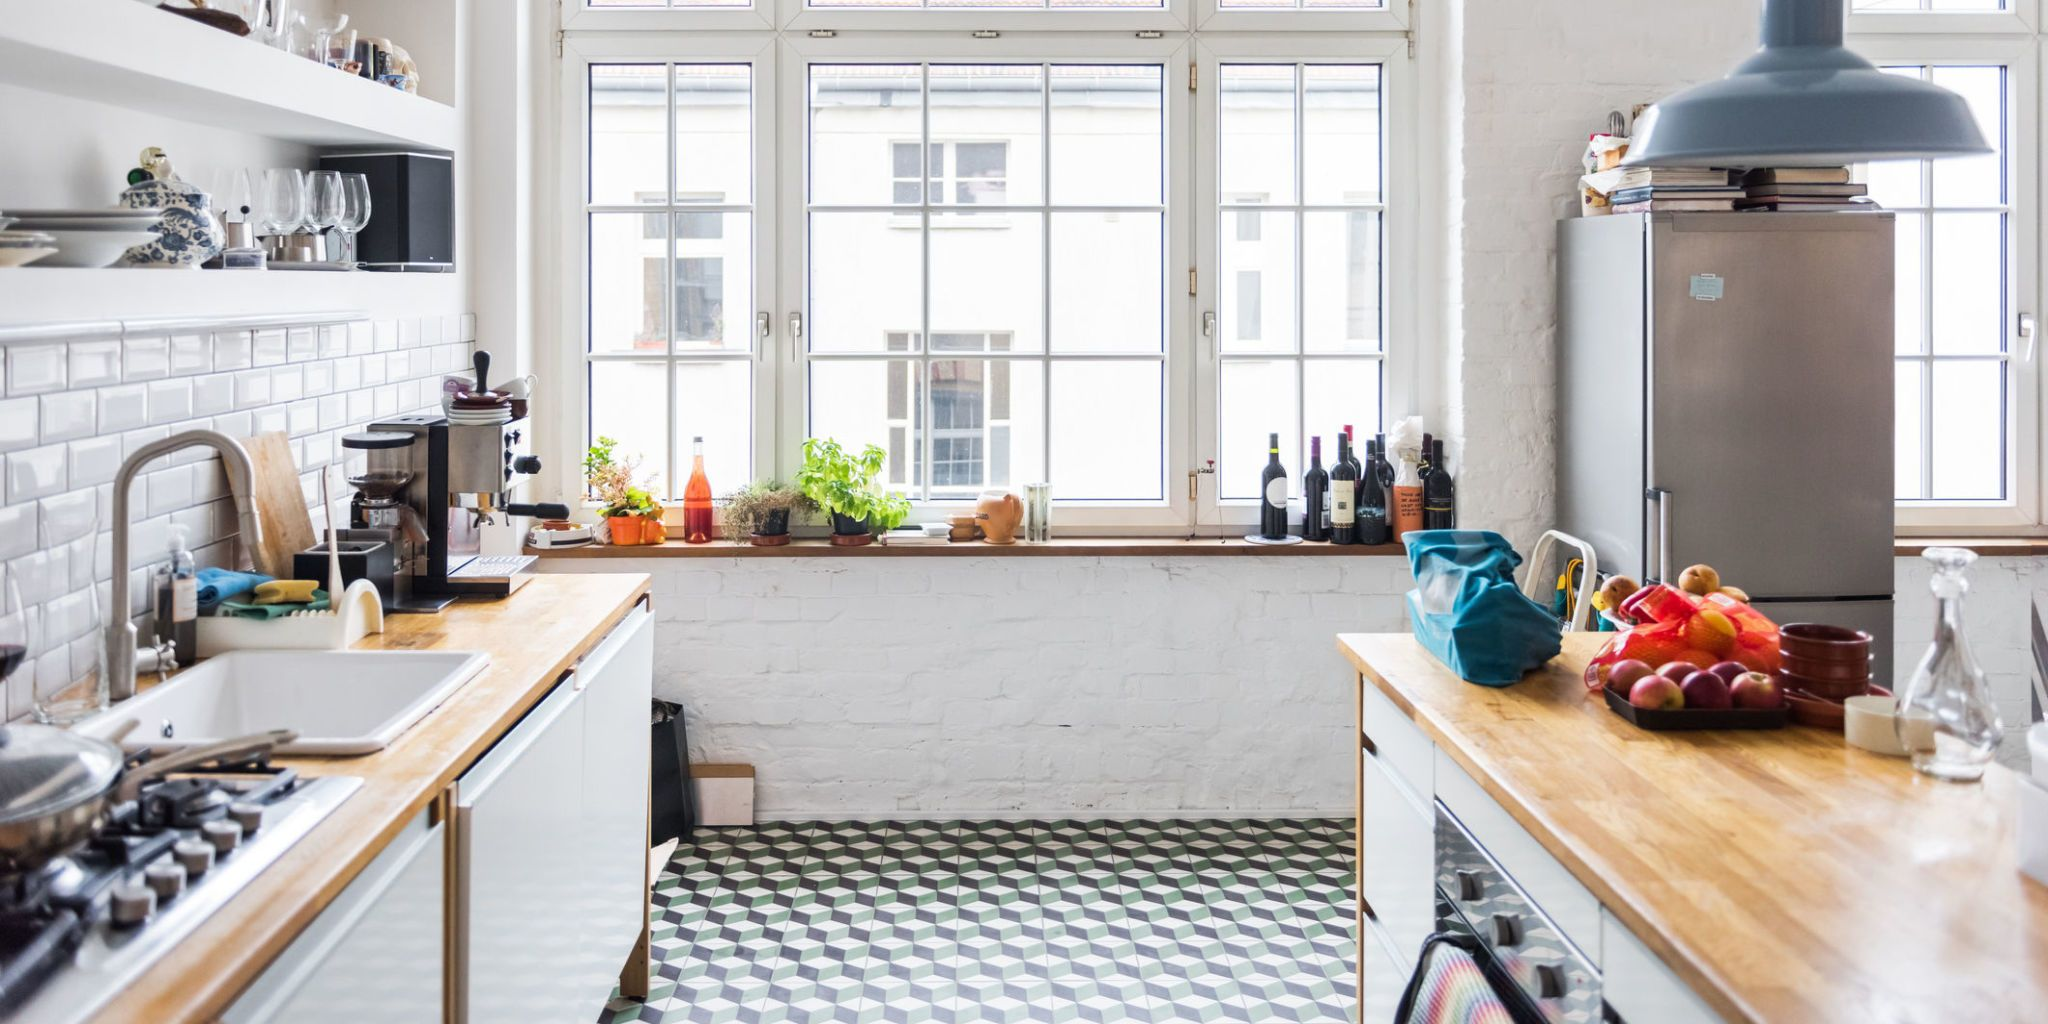 6 Things Beautiful Kitchens Have In Common